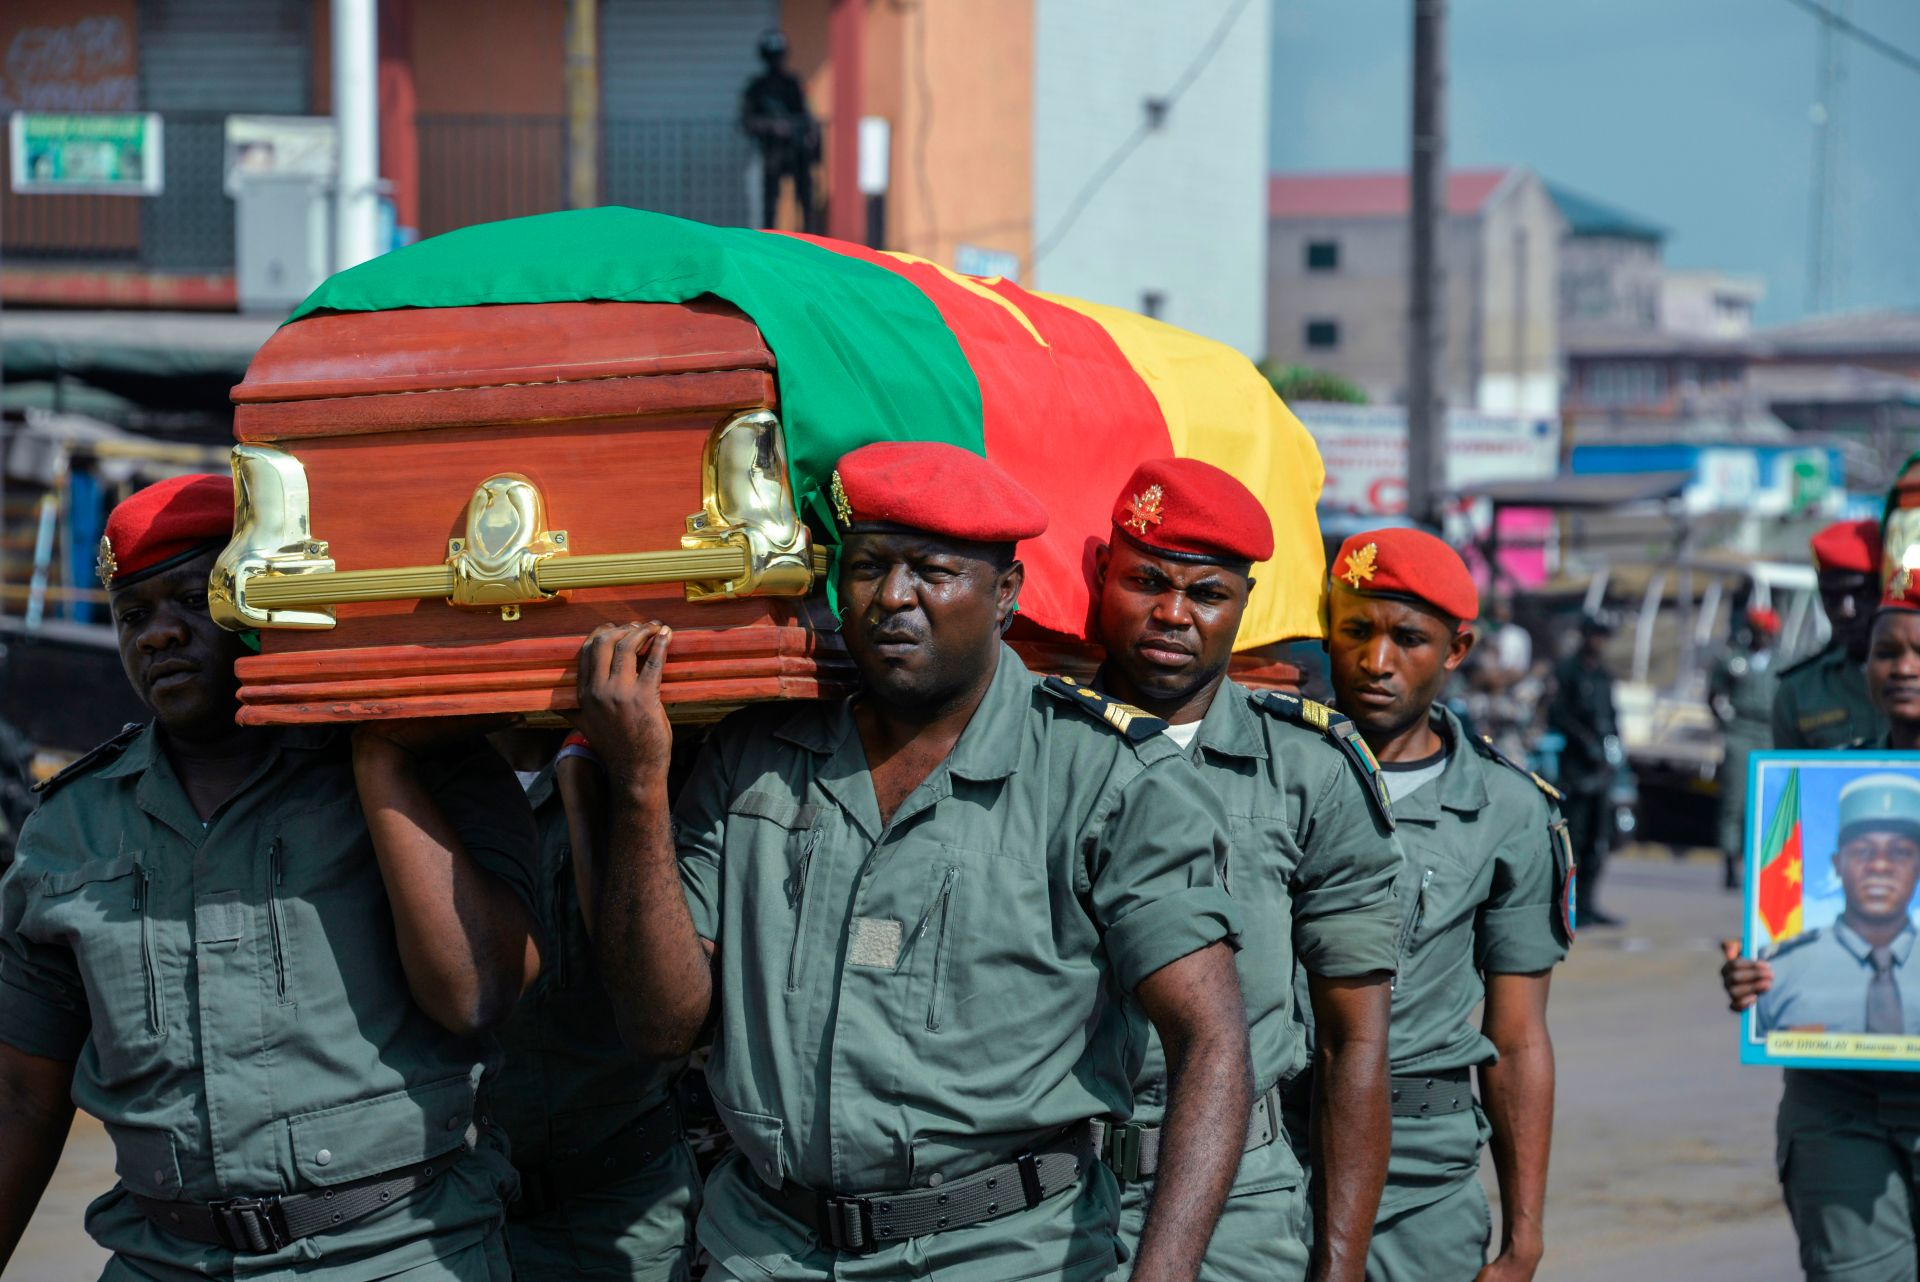 Soldiers carry the coffin of one of the four soldiers killed in the violence that erupted in the Northwest and Southwest regions of Cameroon in Bamenda on Nov. 17, 2017. AFP VIA GETTY IMAGES